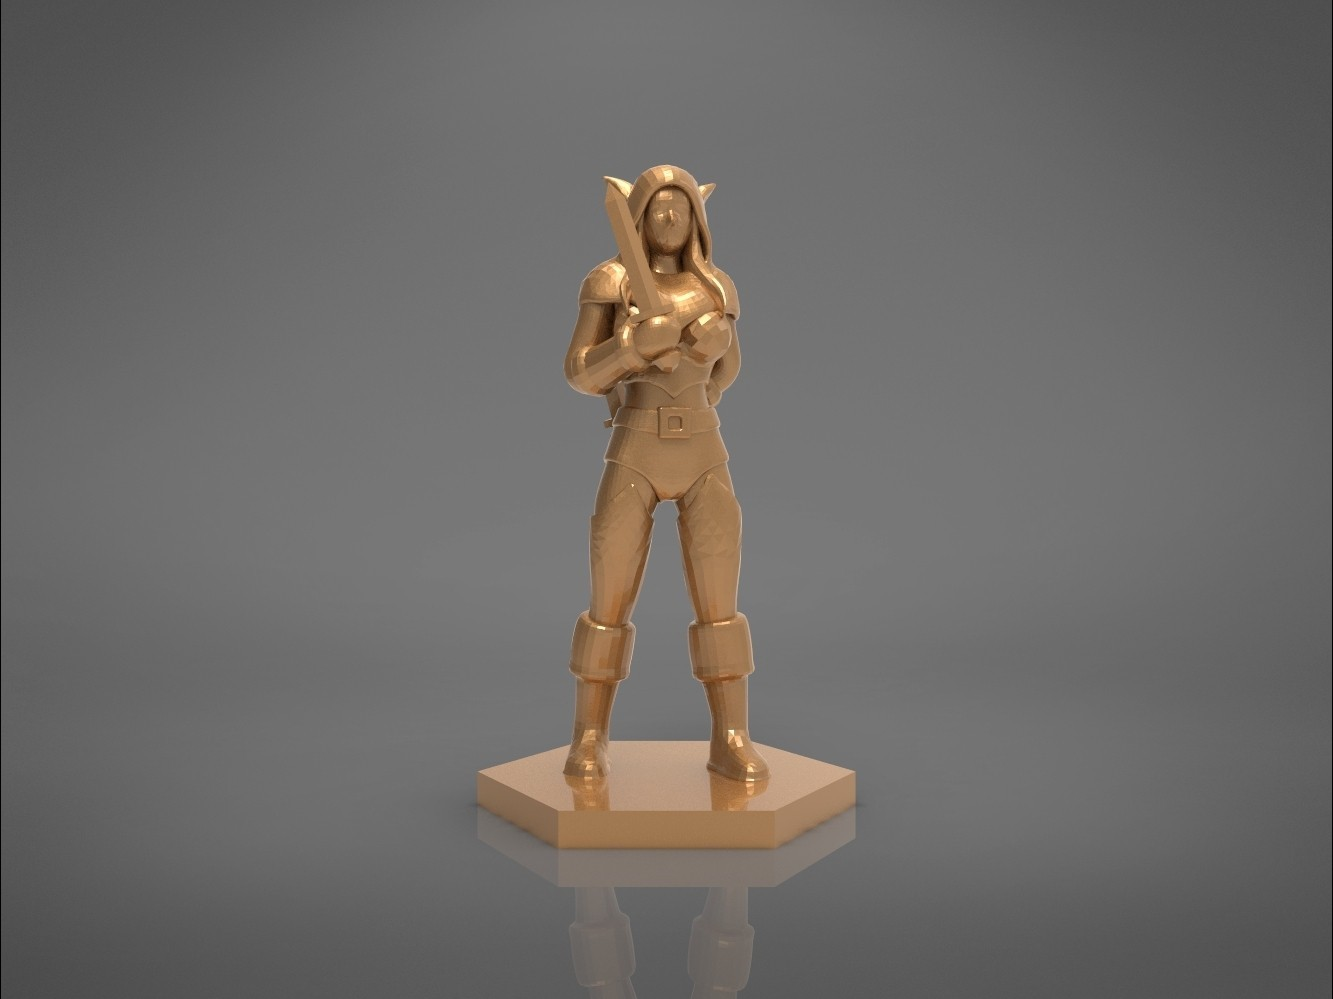 Rogue_2-front_perspective.445.jpg Download STL file ELF ROGUE FEMALE CHARACTER GAME FIGURES 3D print model • 3D printer object, 3D-mon